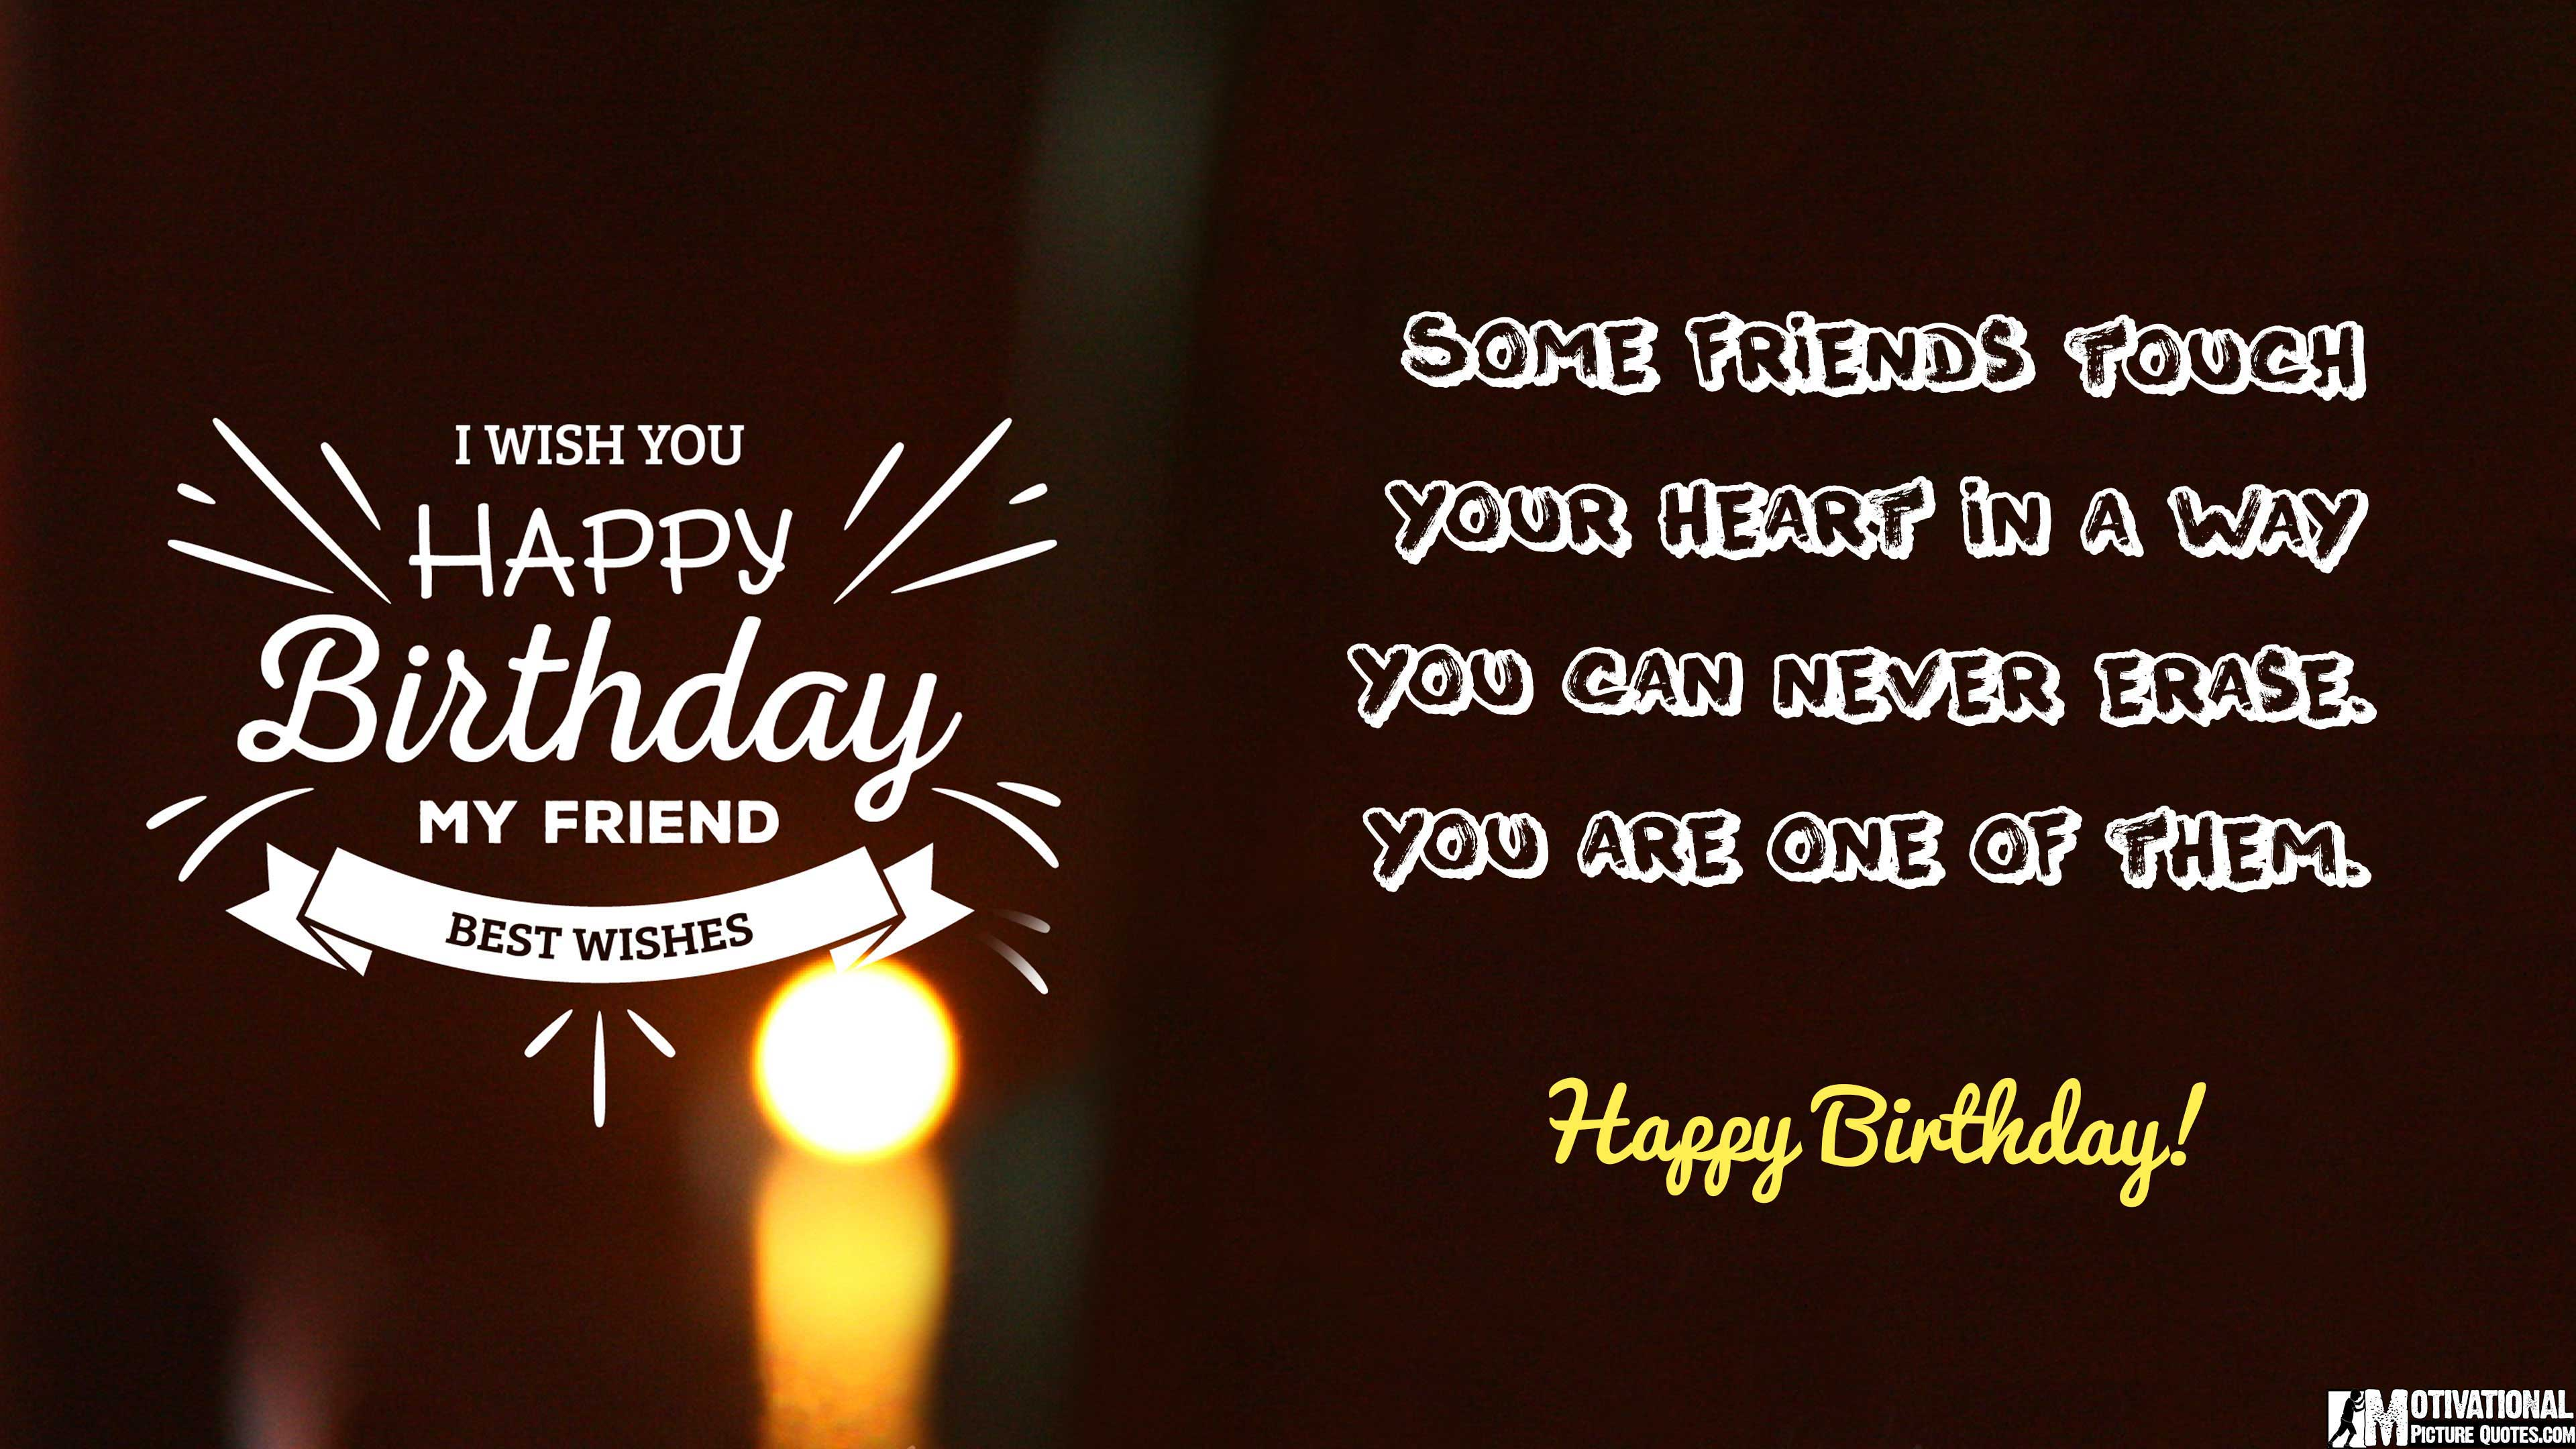 35 Inspirational Birthday Quotes Images – Latest Birthday Greetings for Friends